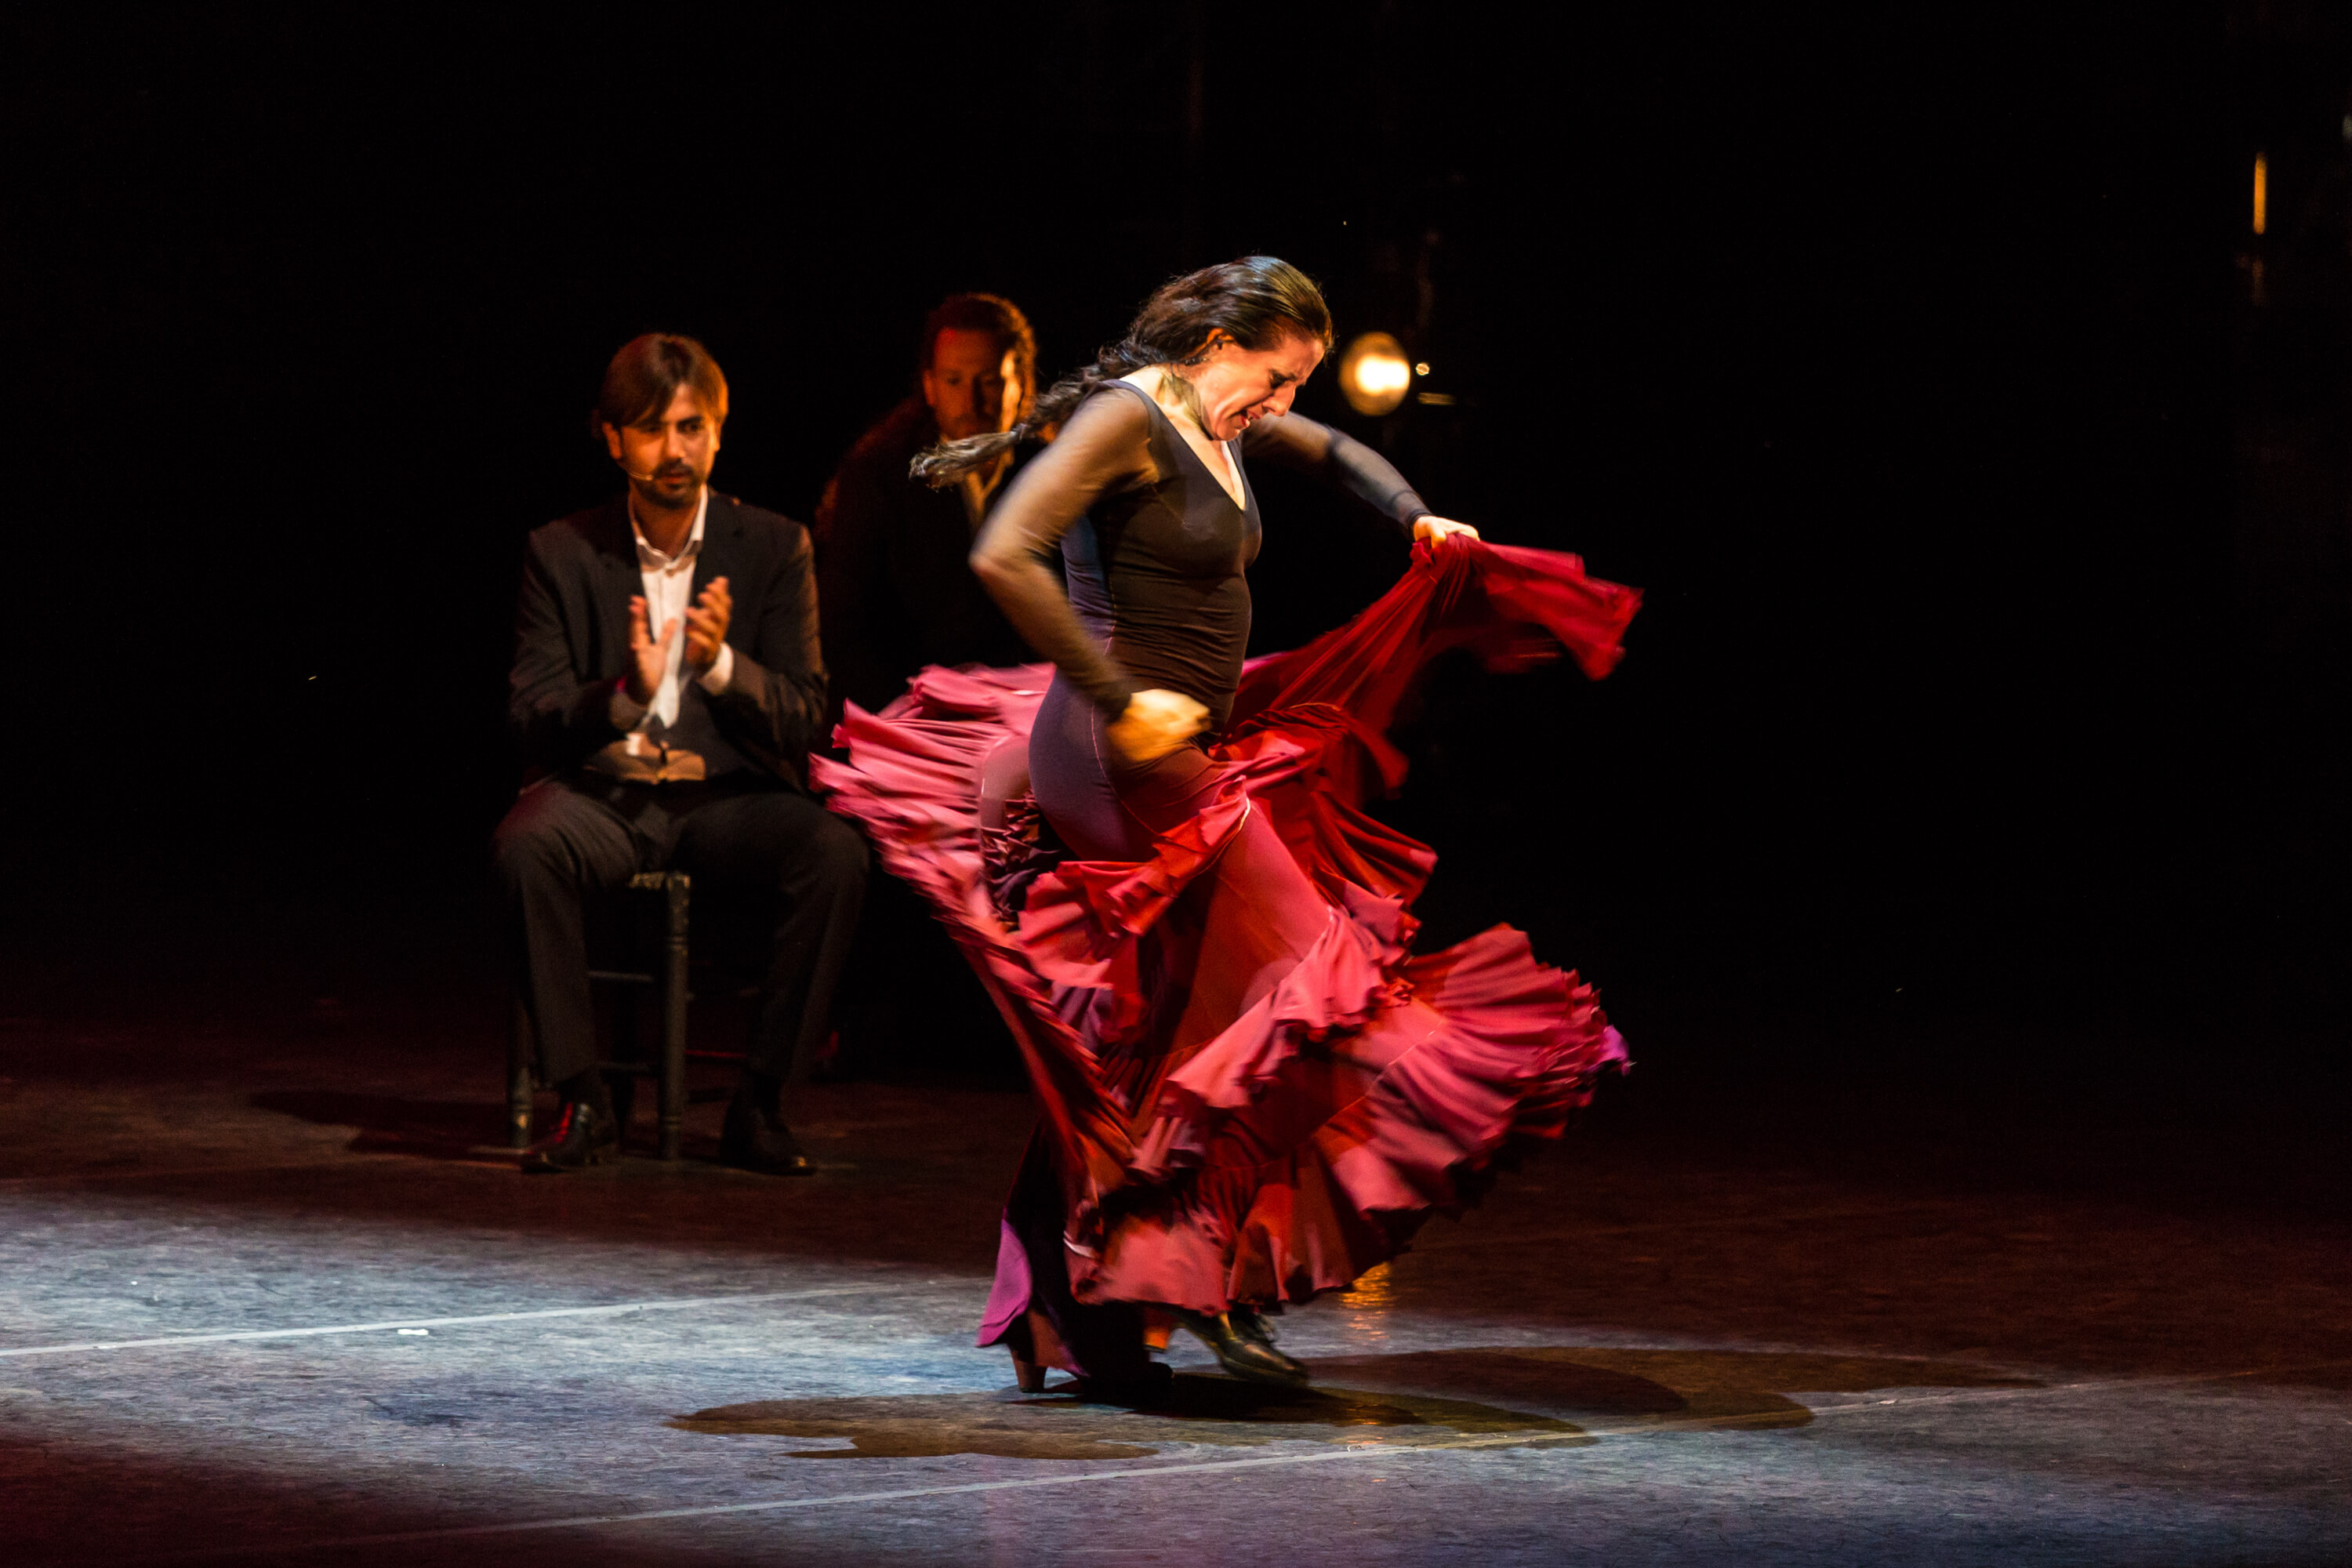 10 Things You Need to Know Before Visiting Spain - Flamenco Dancer